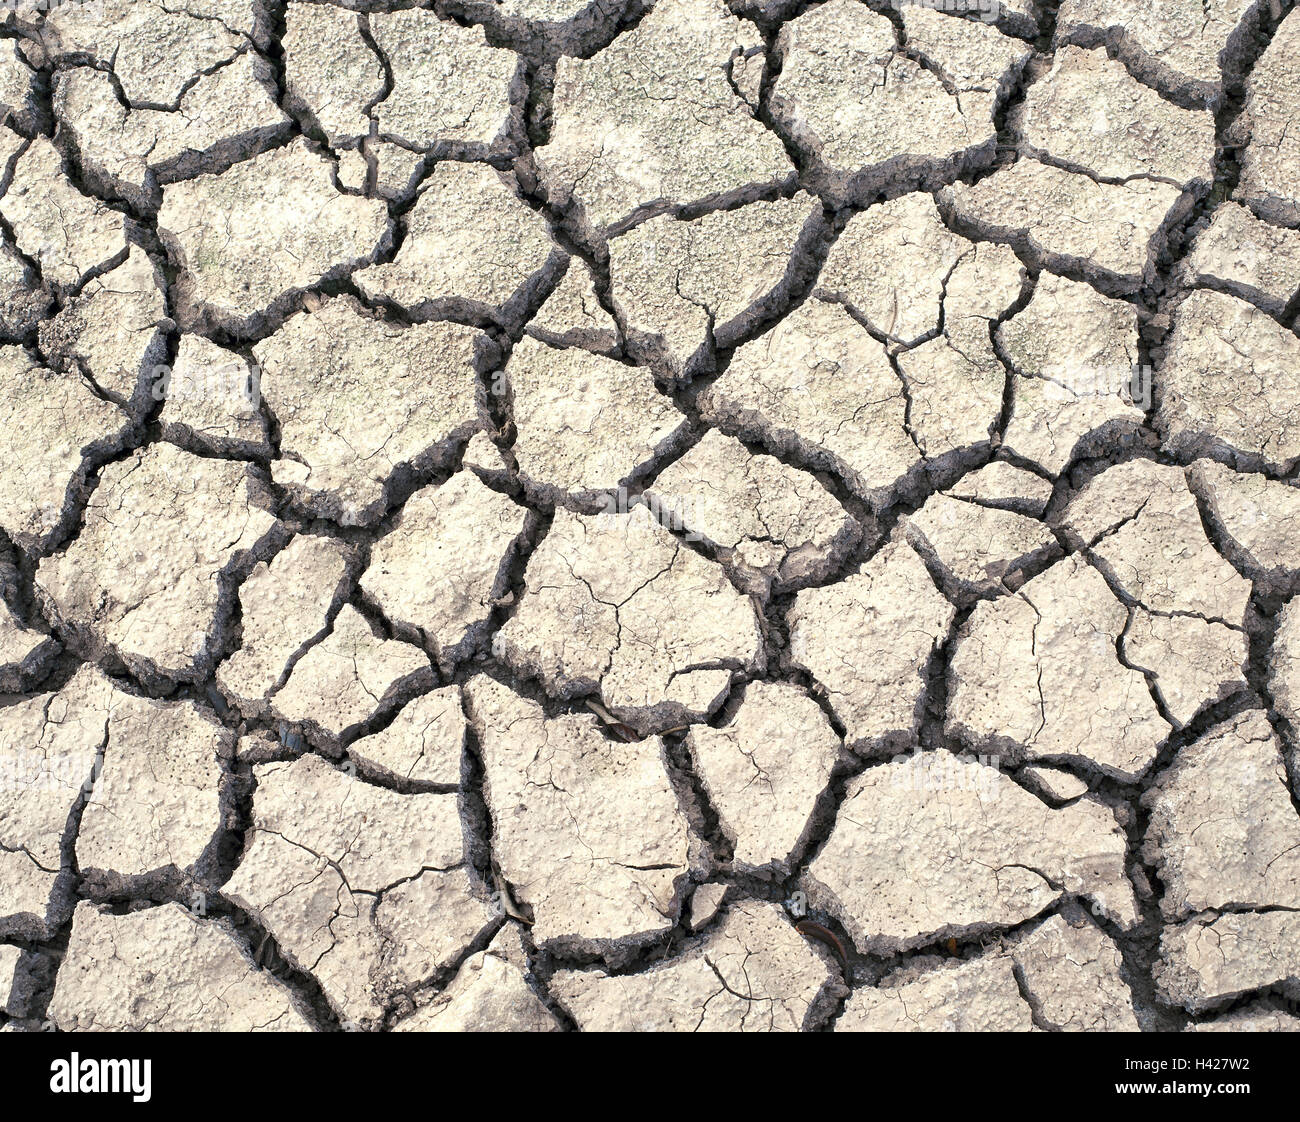 Earth, characteristical, drought, dryness, lack of water - Stock Image